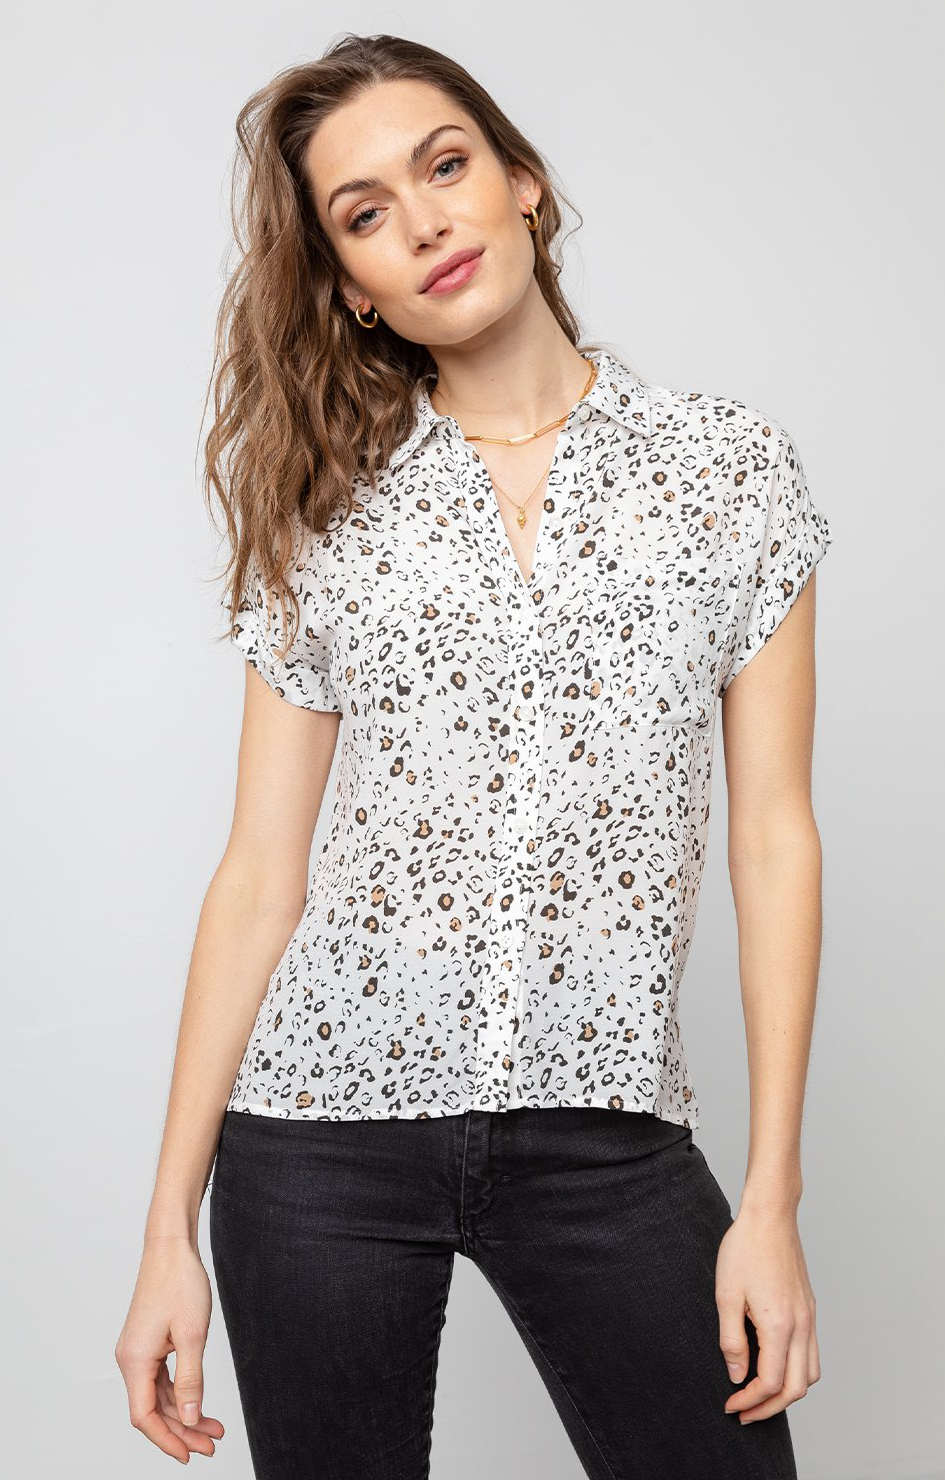 Whitney Shirt In White Mocha Leopard - Rails Clothing